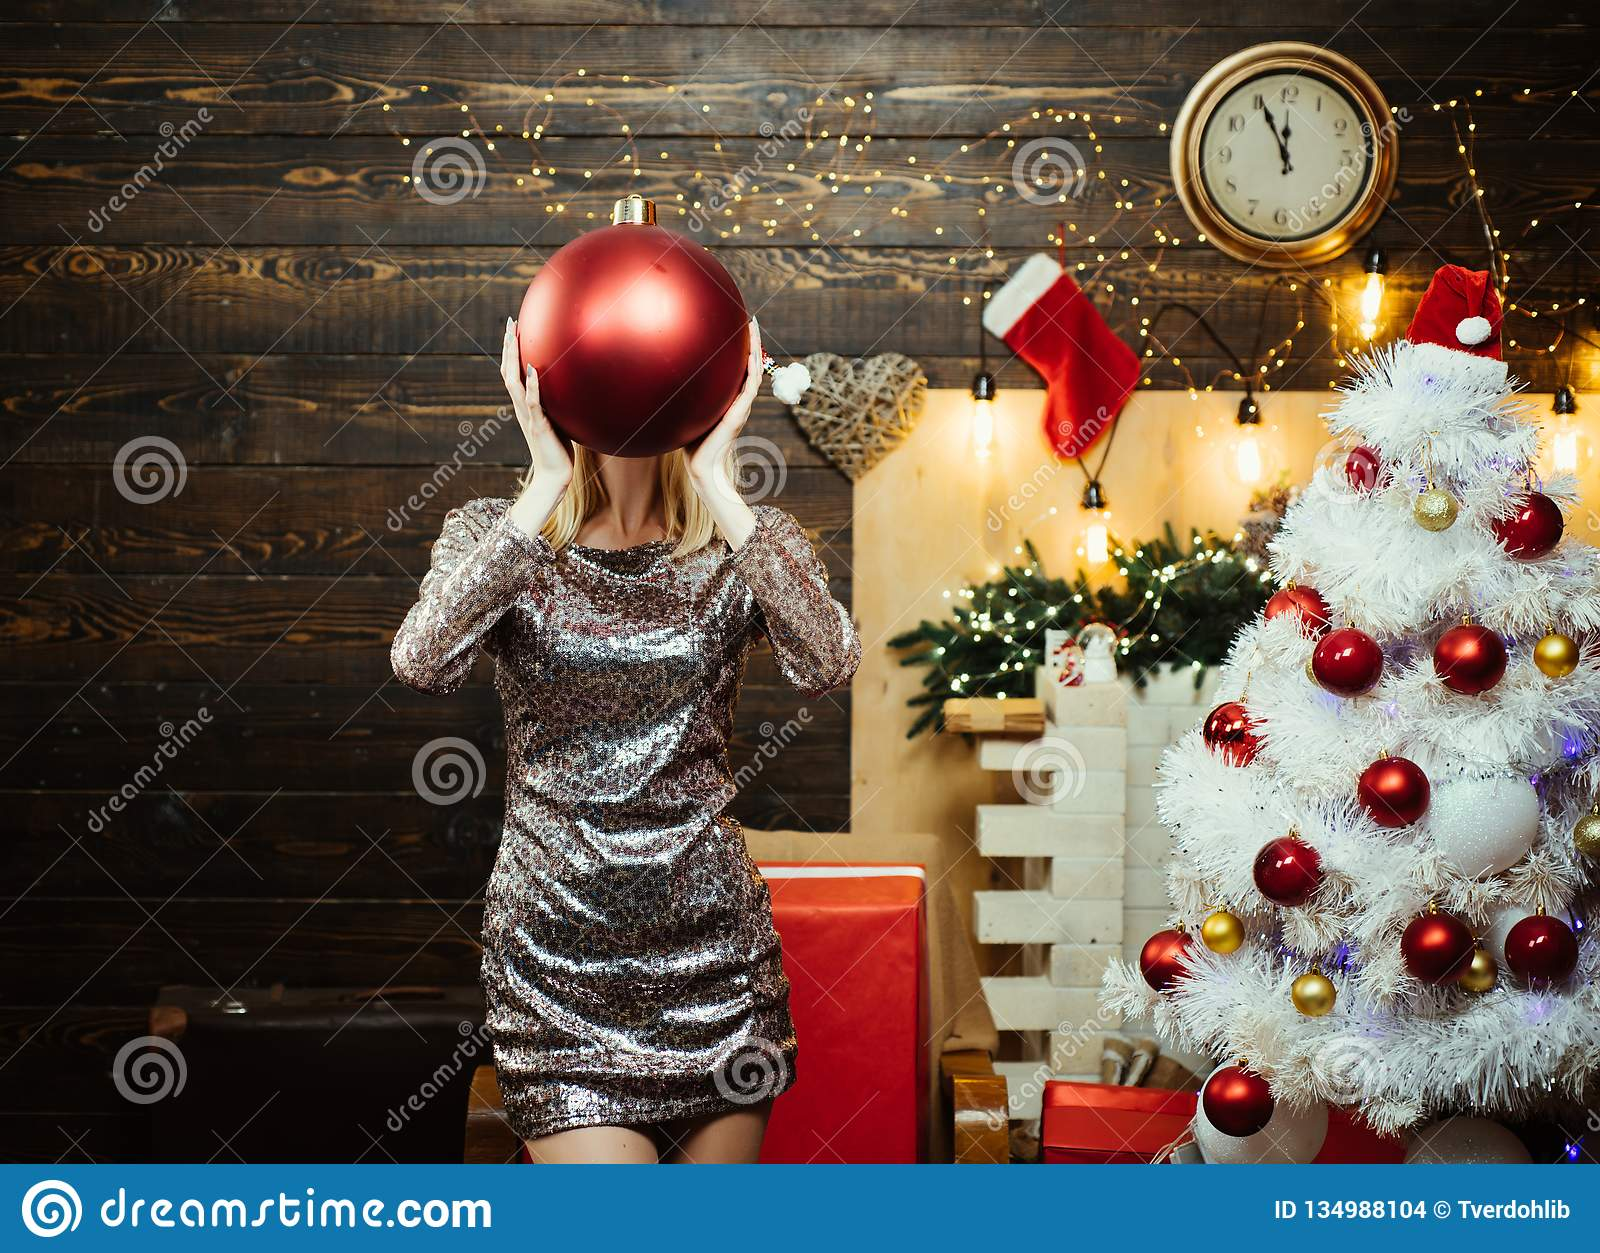 Santa woman posing on vintage Christmas background. Christmas tree decorate at home. Beautiful smiling woman wishes